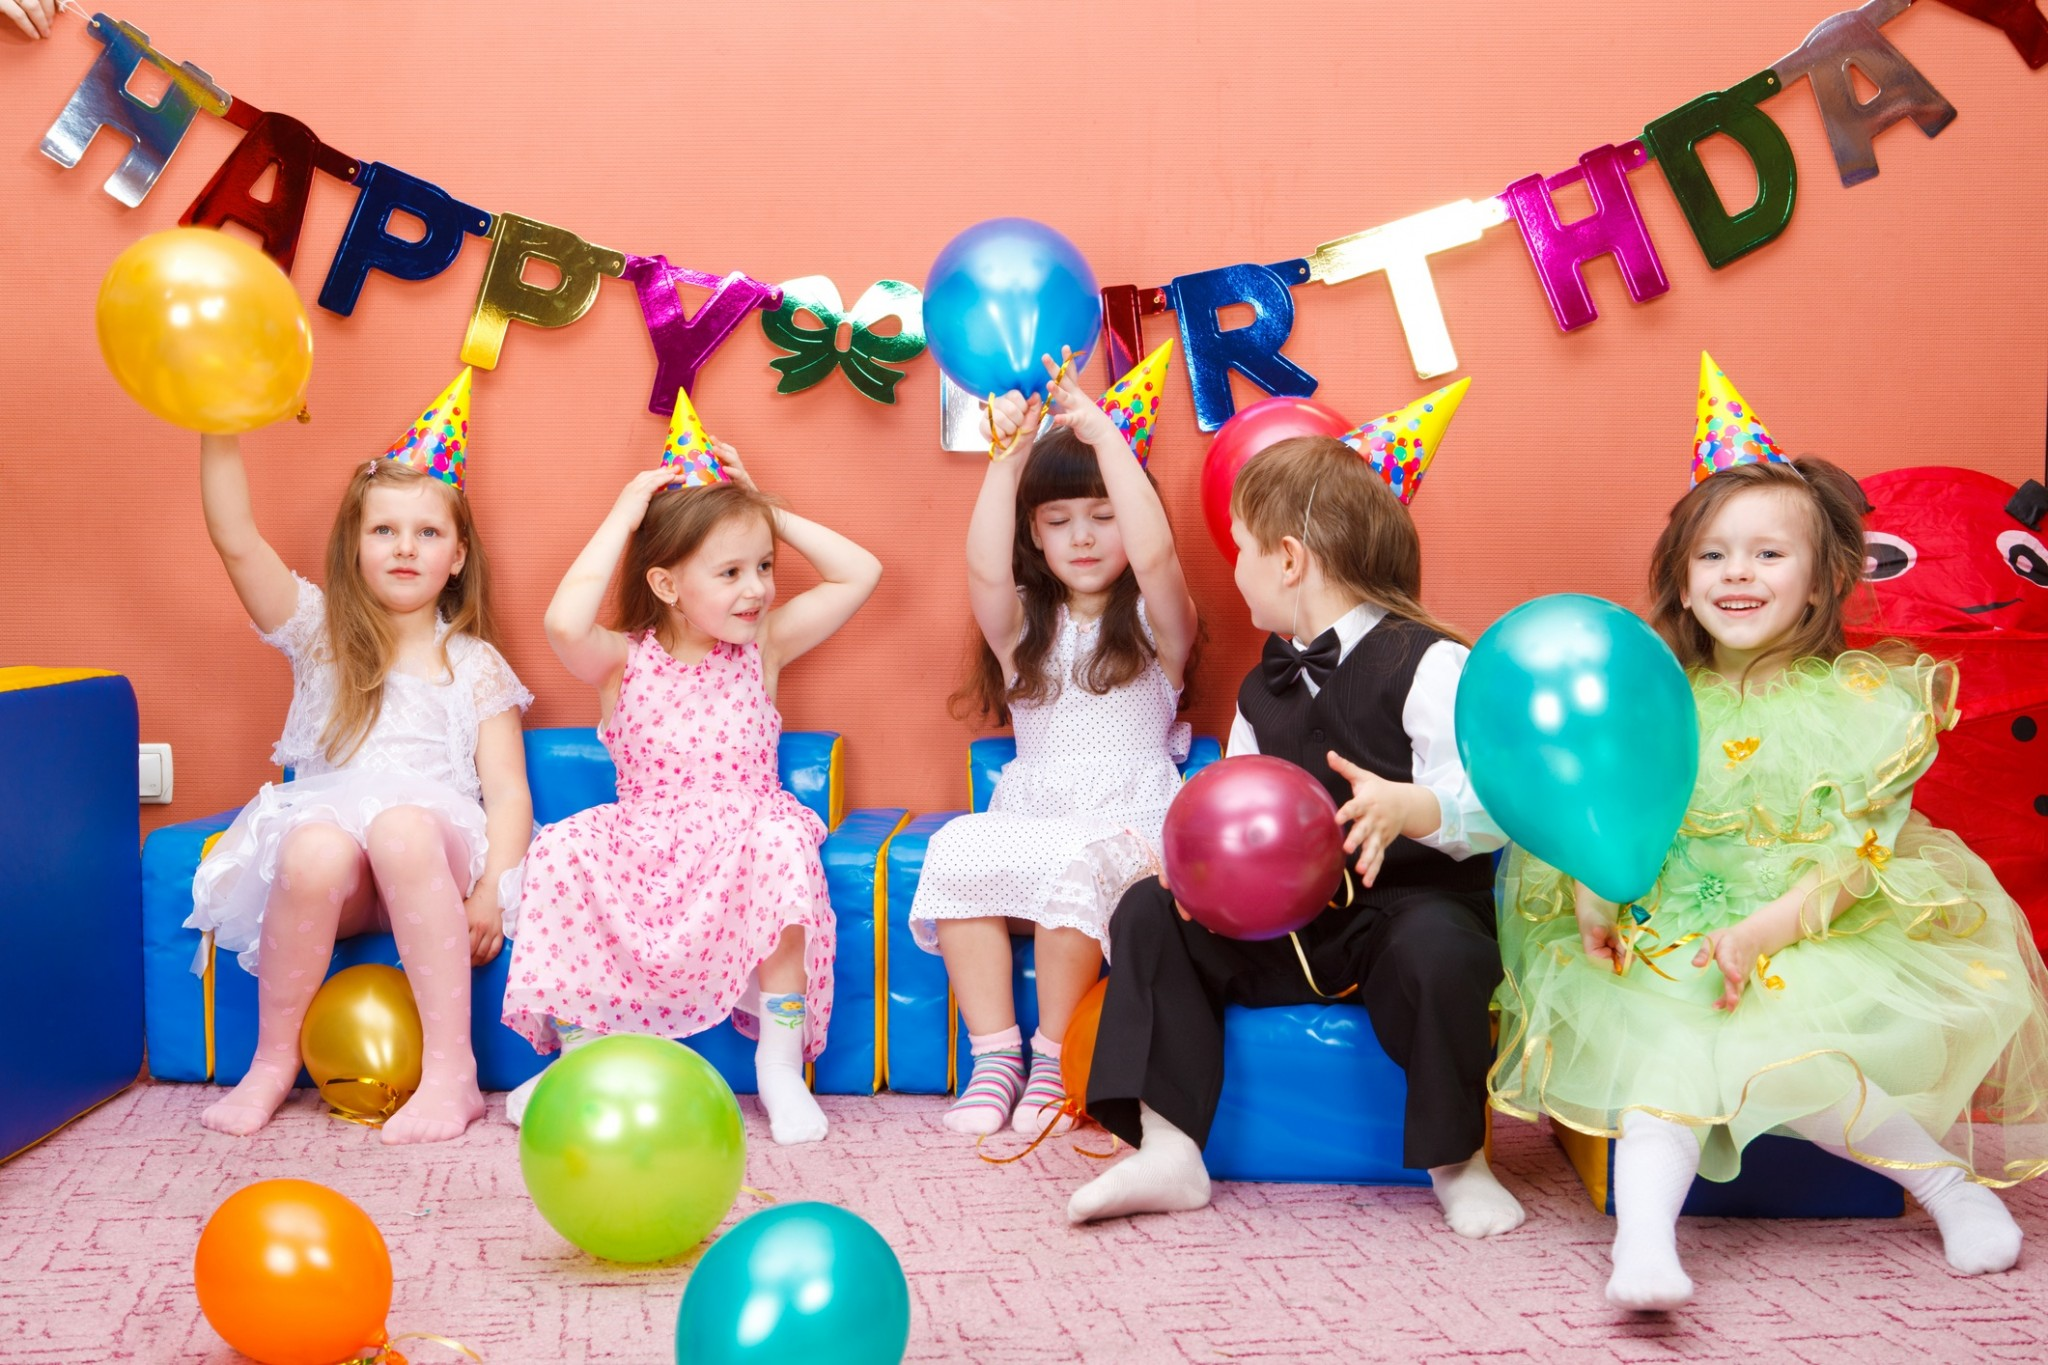 Best Foods for Kids Parties